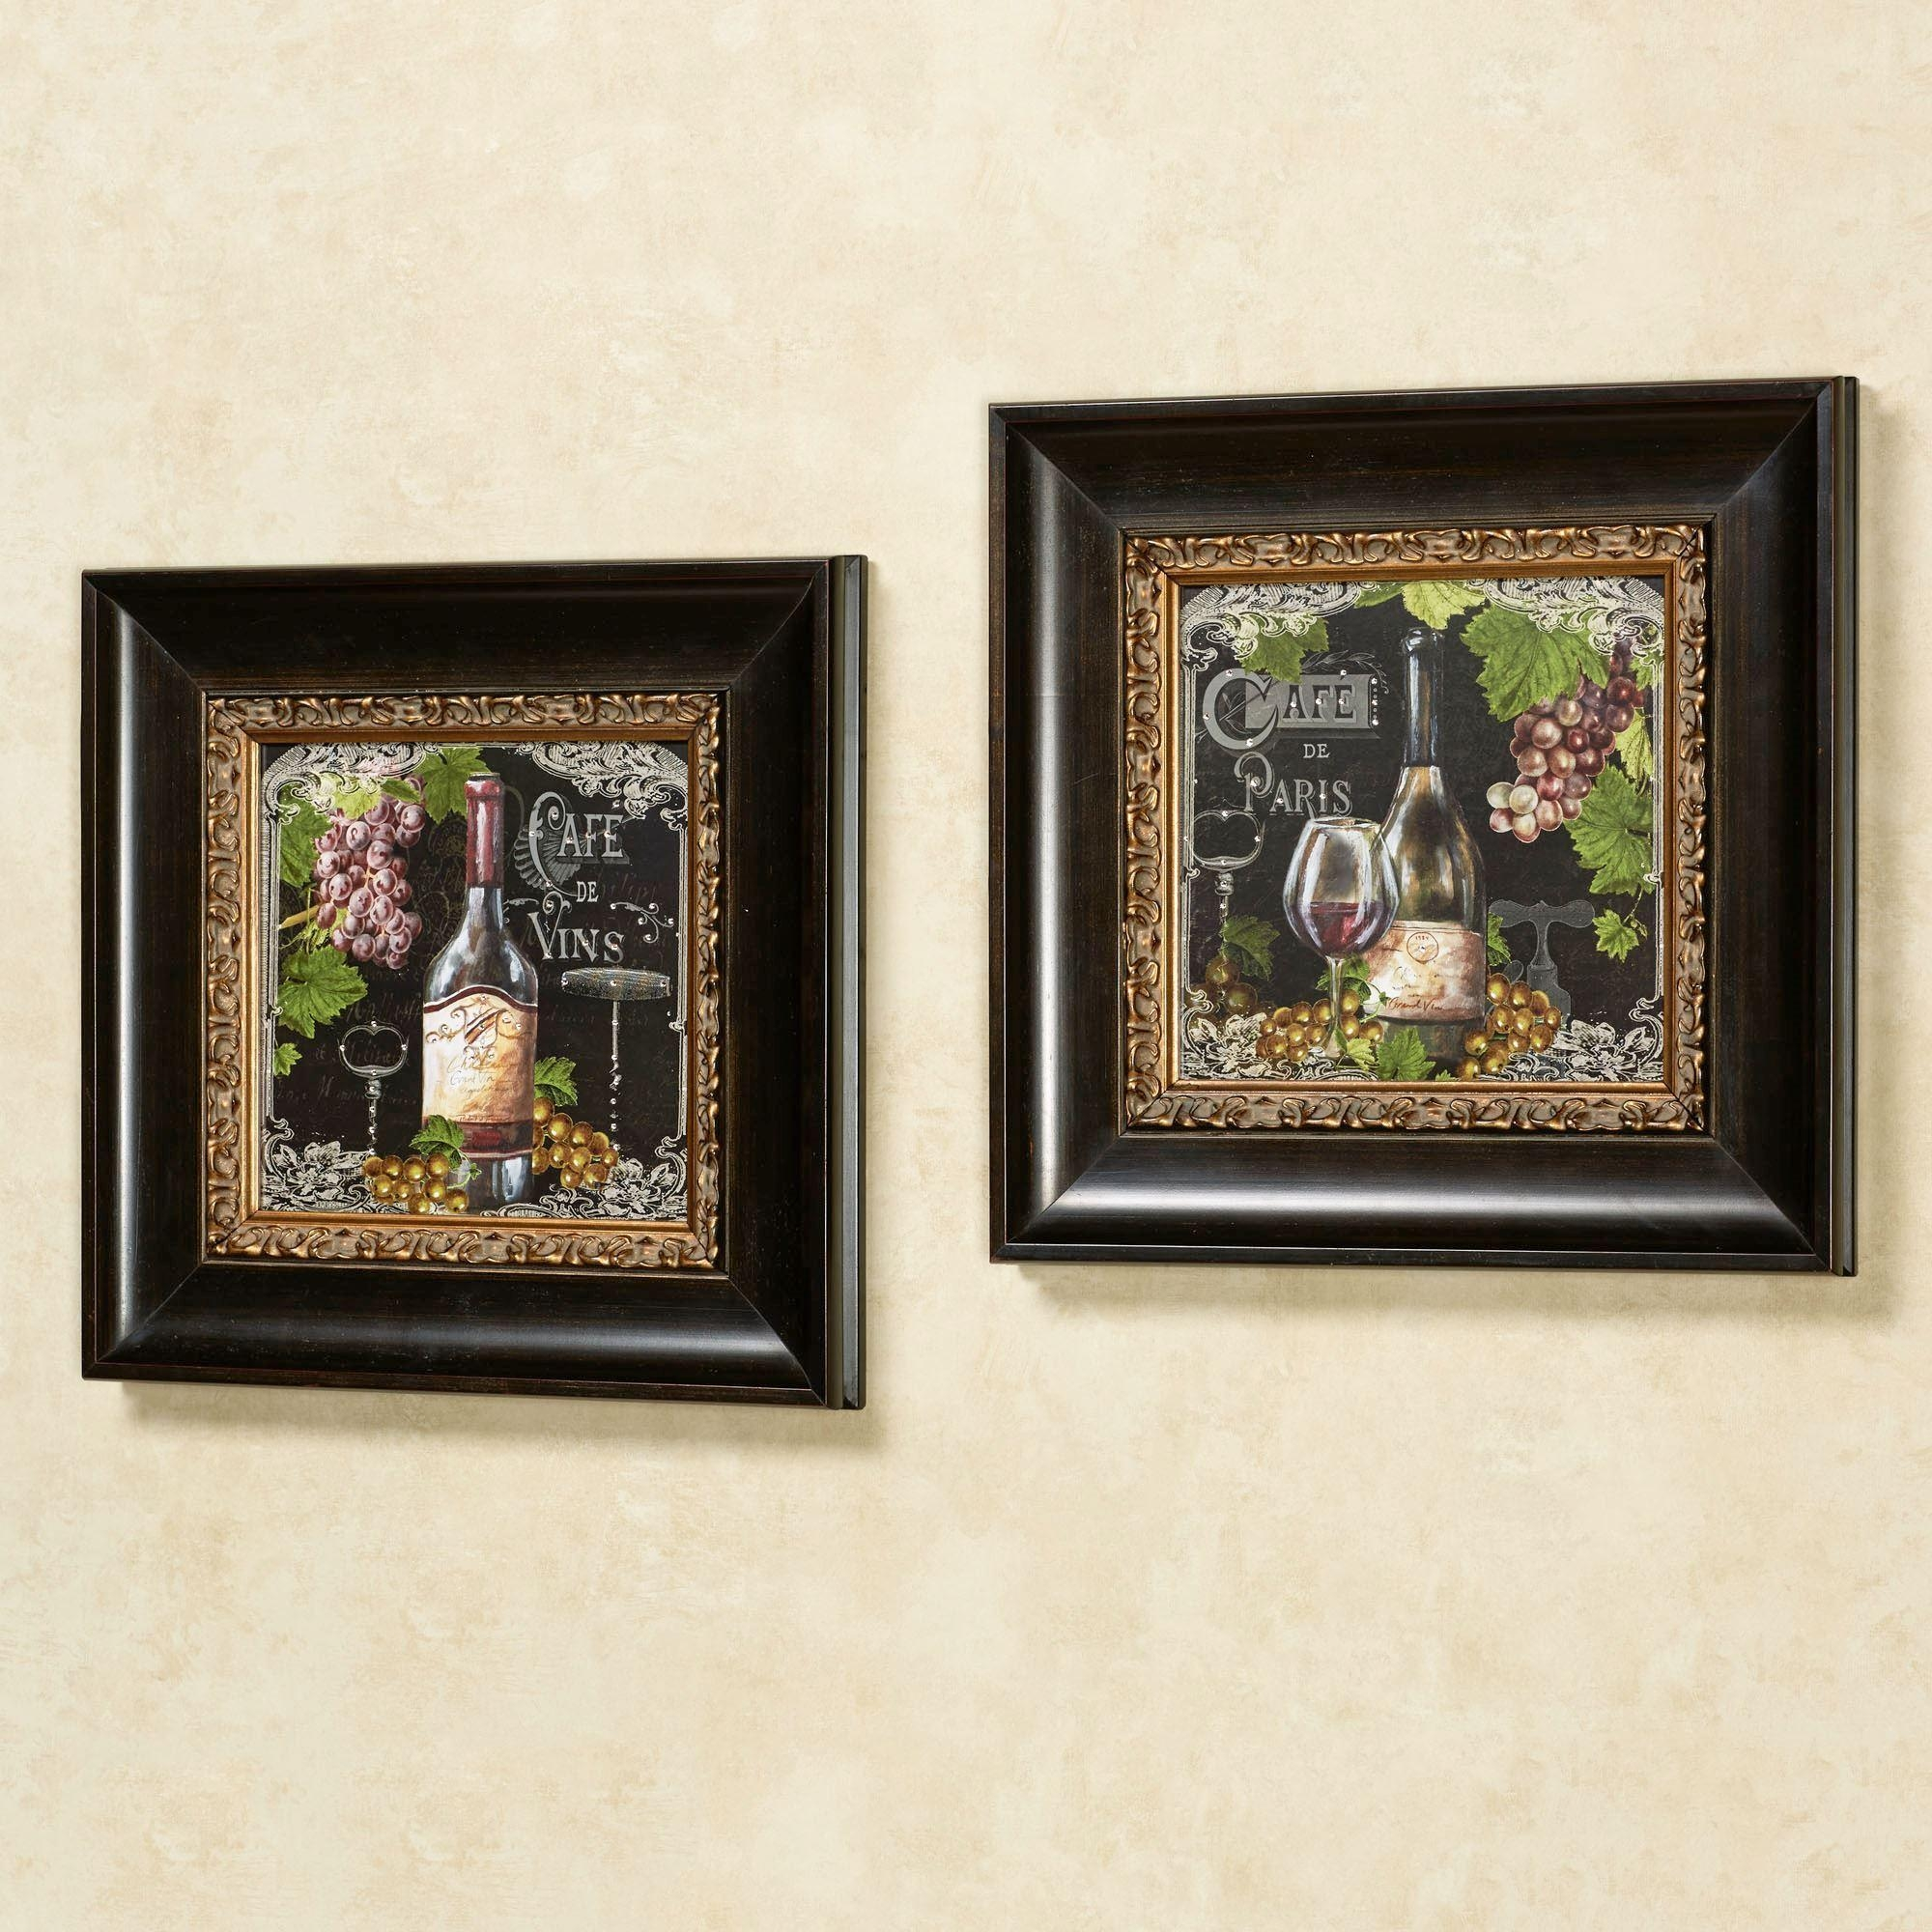 Cafe De Paris Wine Framed Wall Art Set In Parisian Wall Art (View 20 of 20)